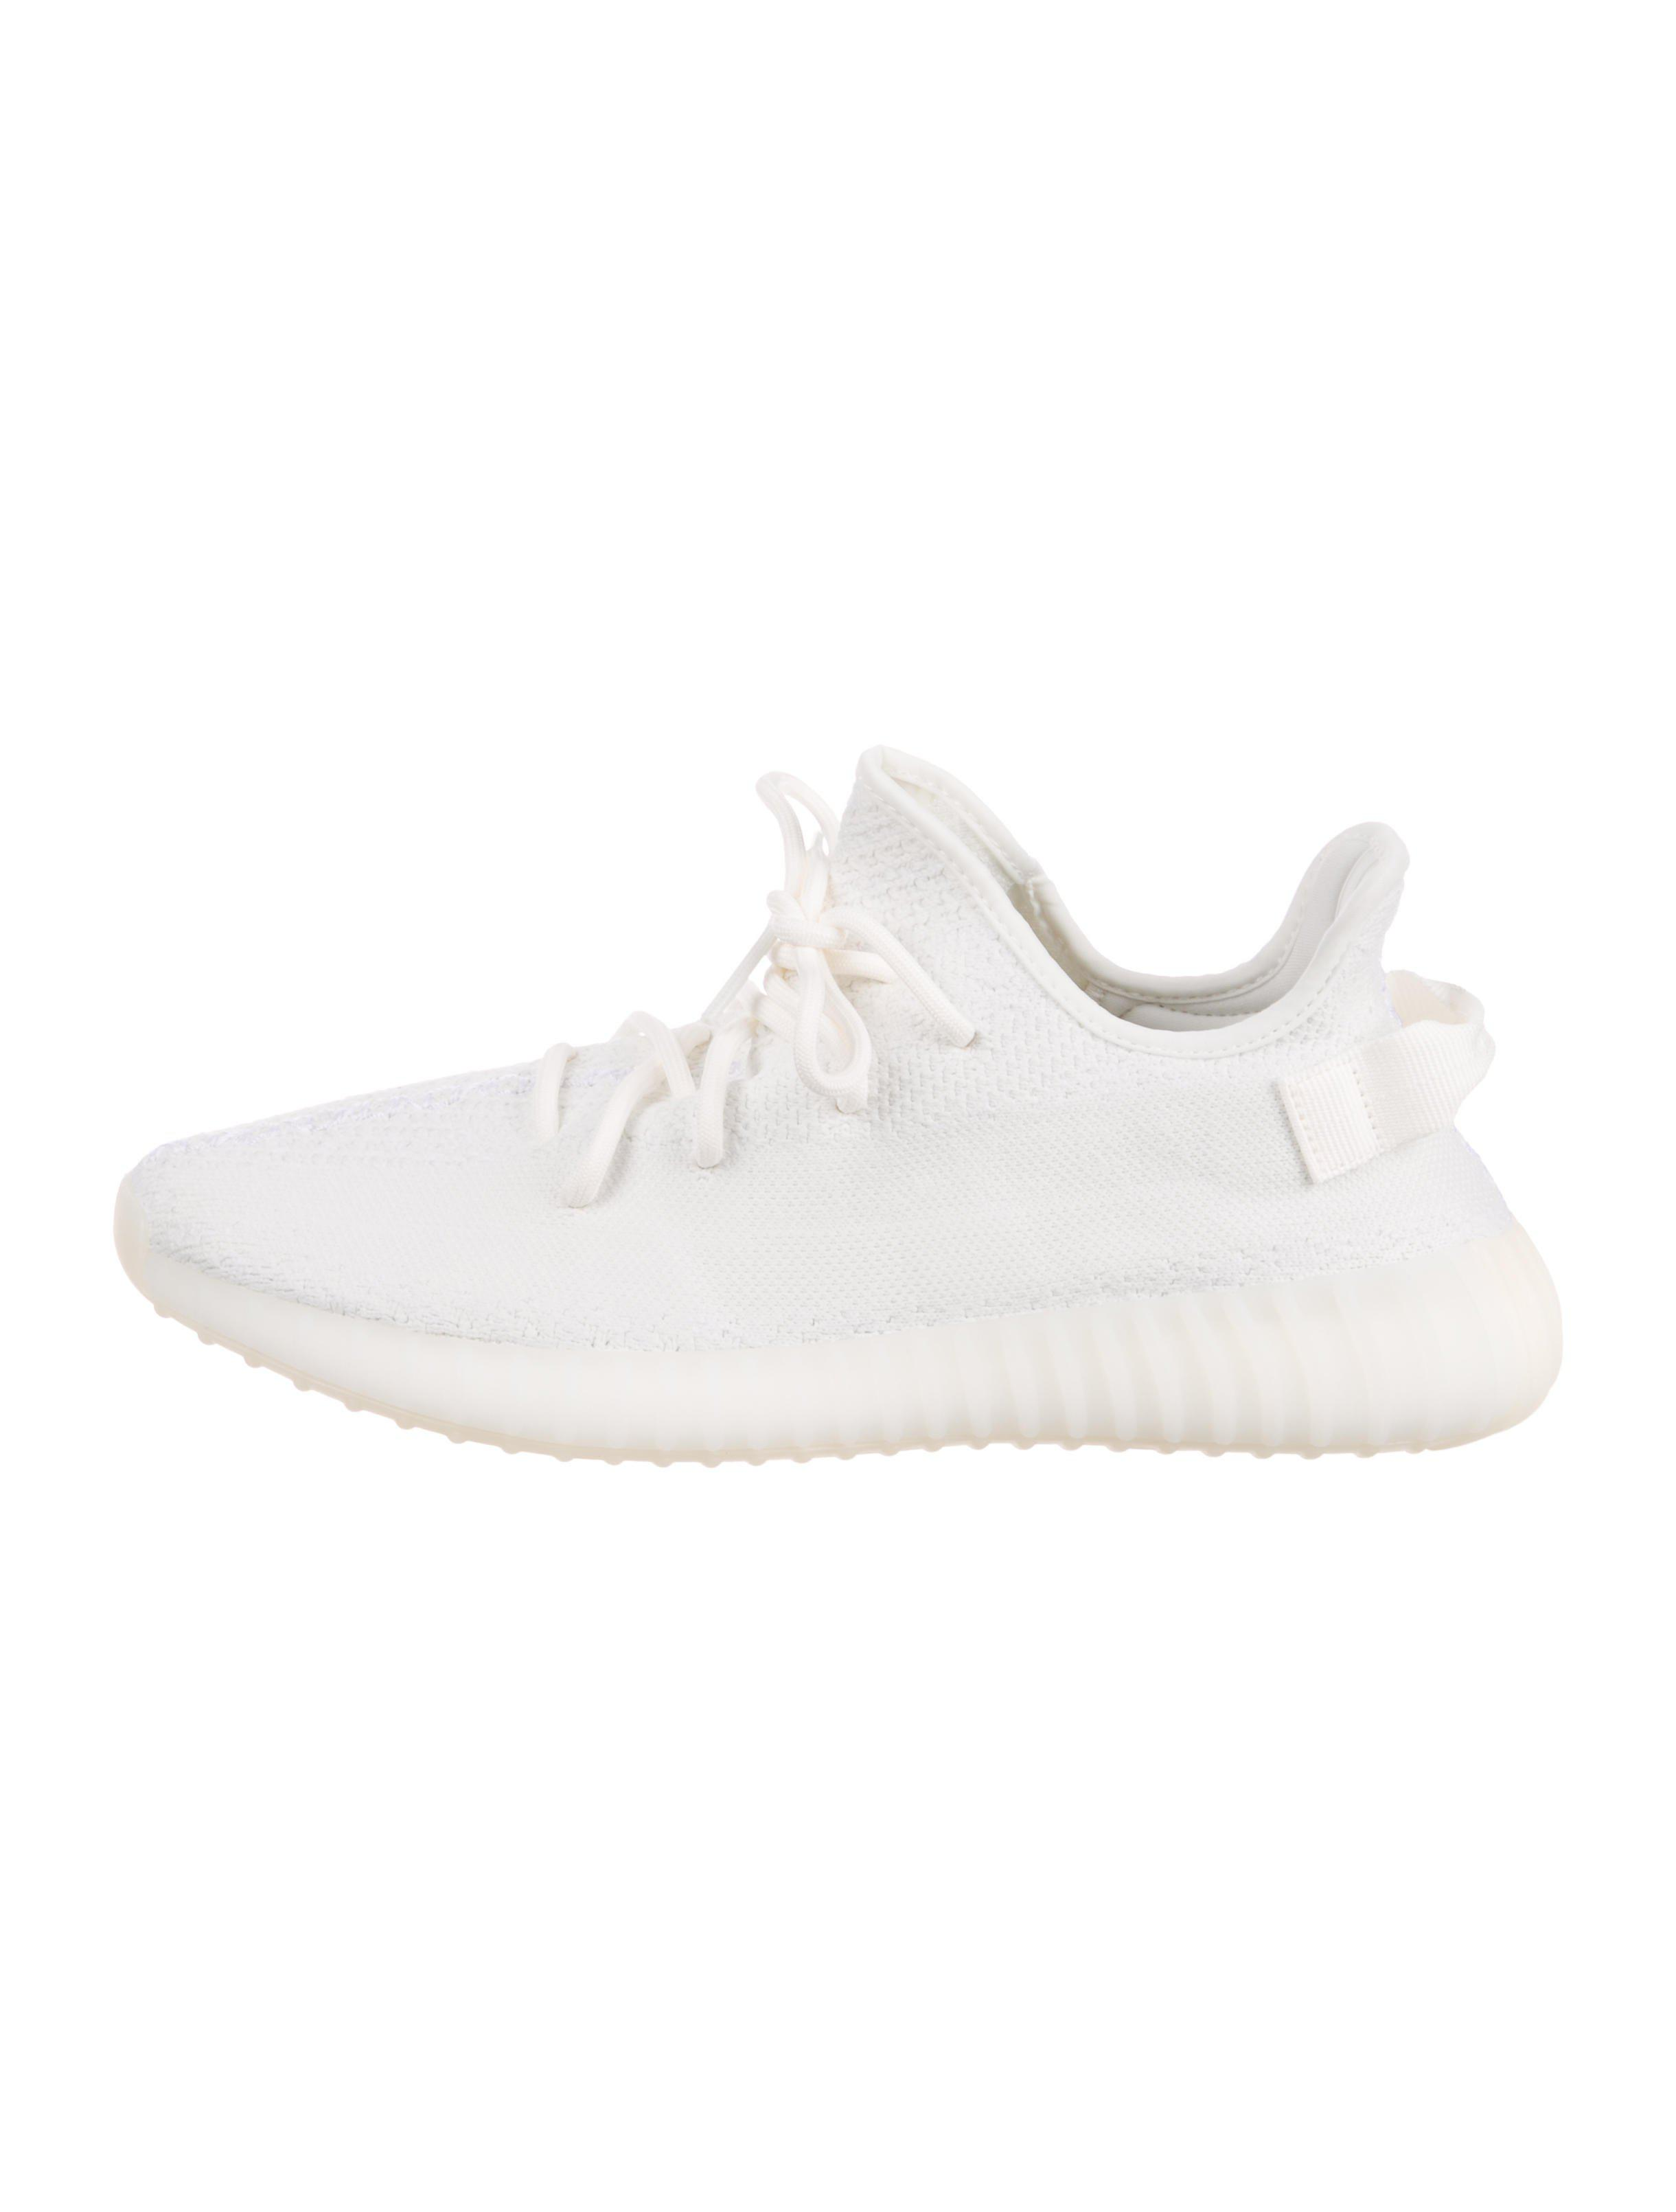 1685fbd41 Lyst - Yeezy 2017 Boost 350 V2 Cream Sneakers W  Tags in White for Men